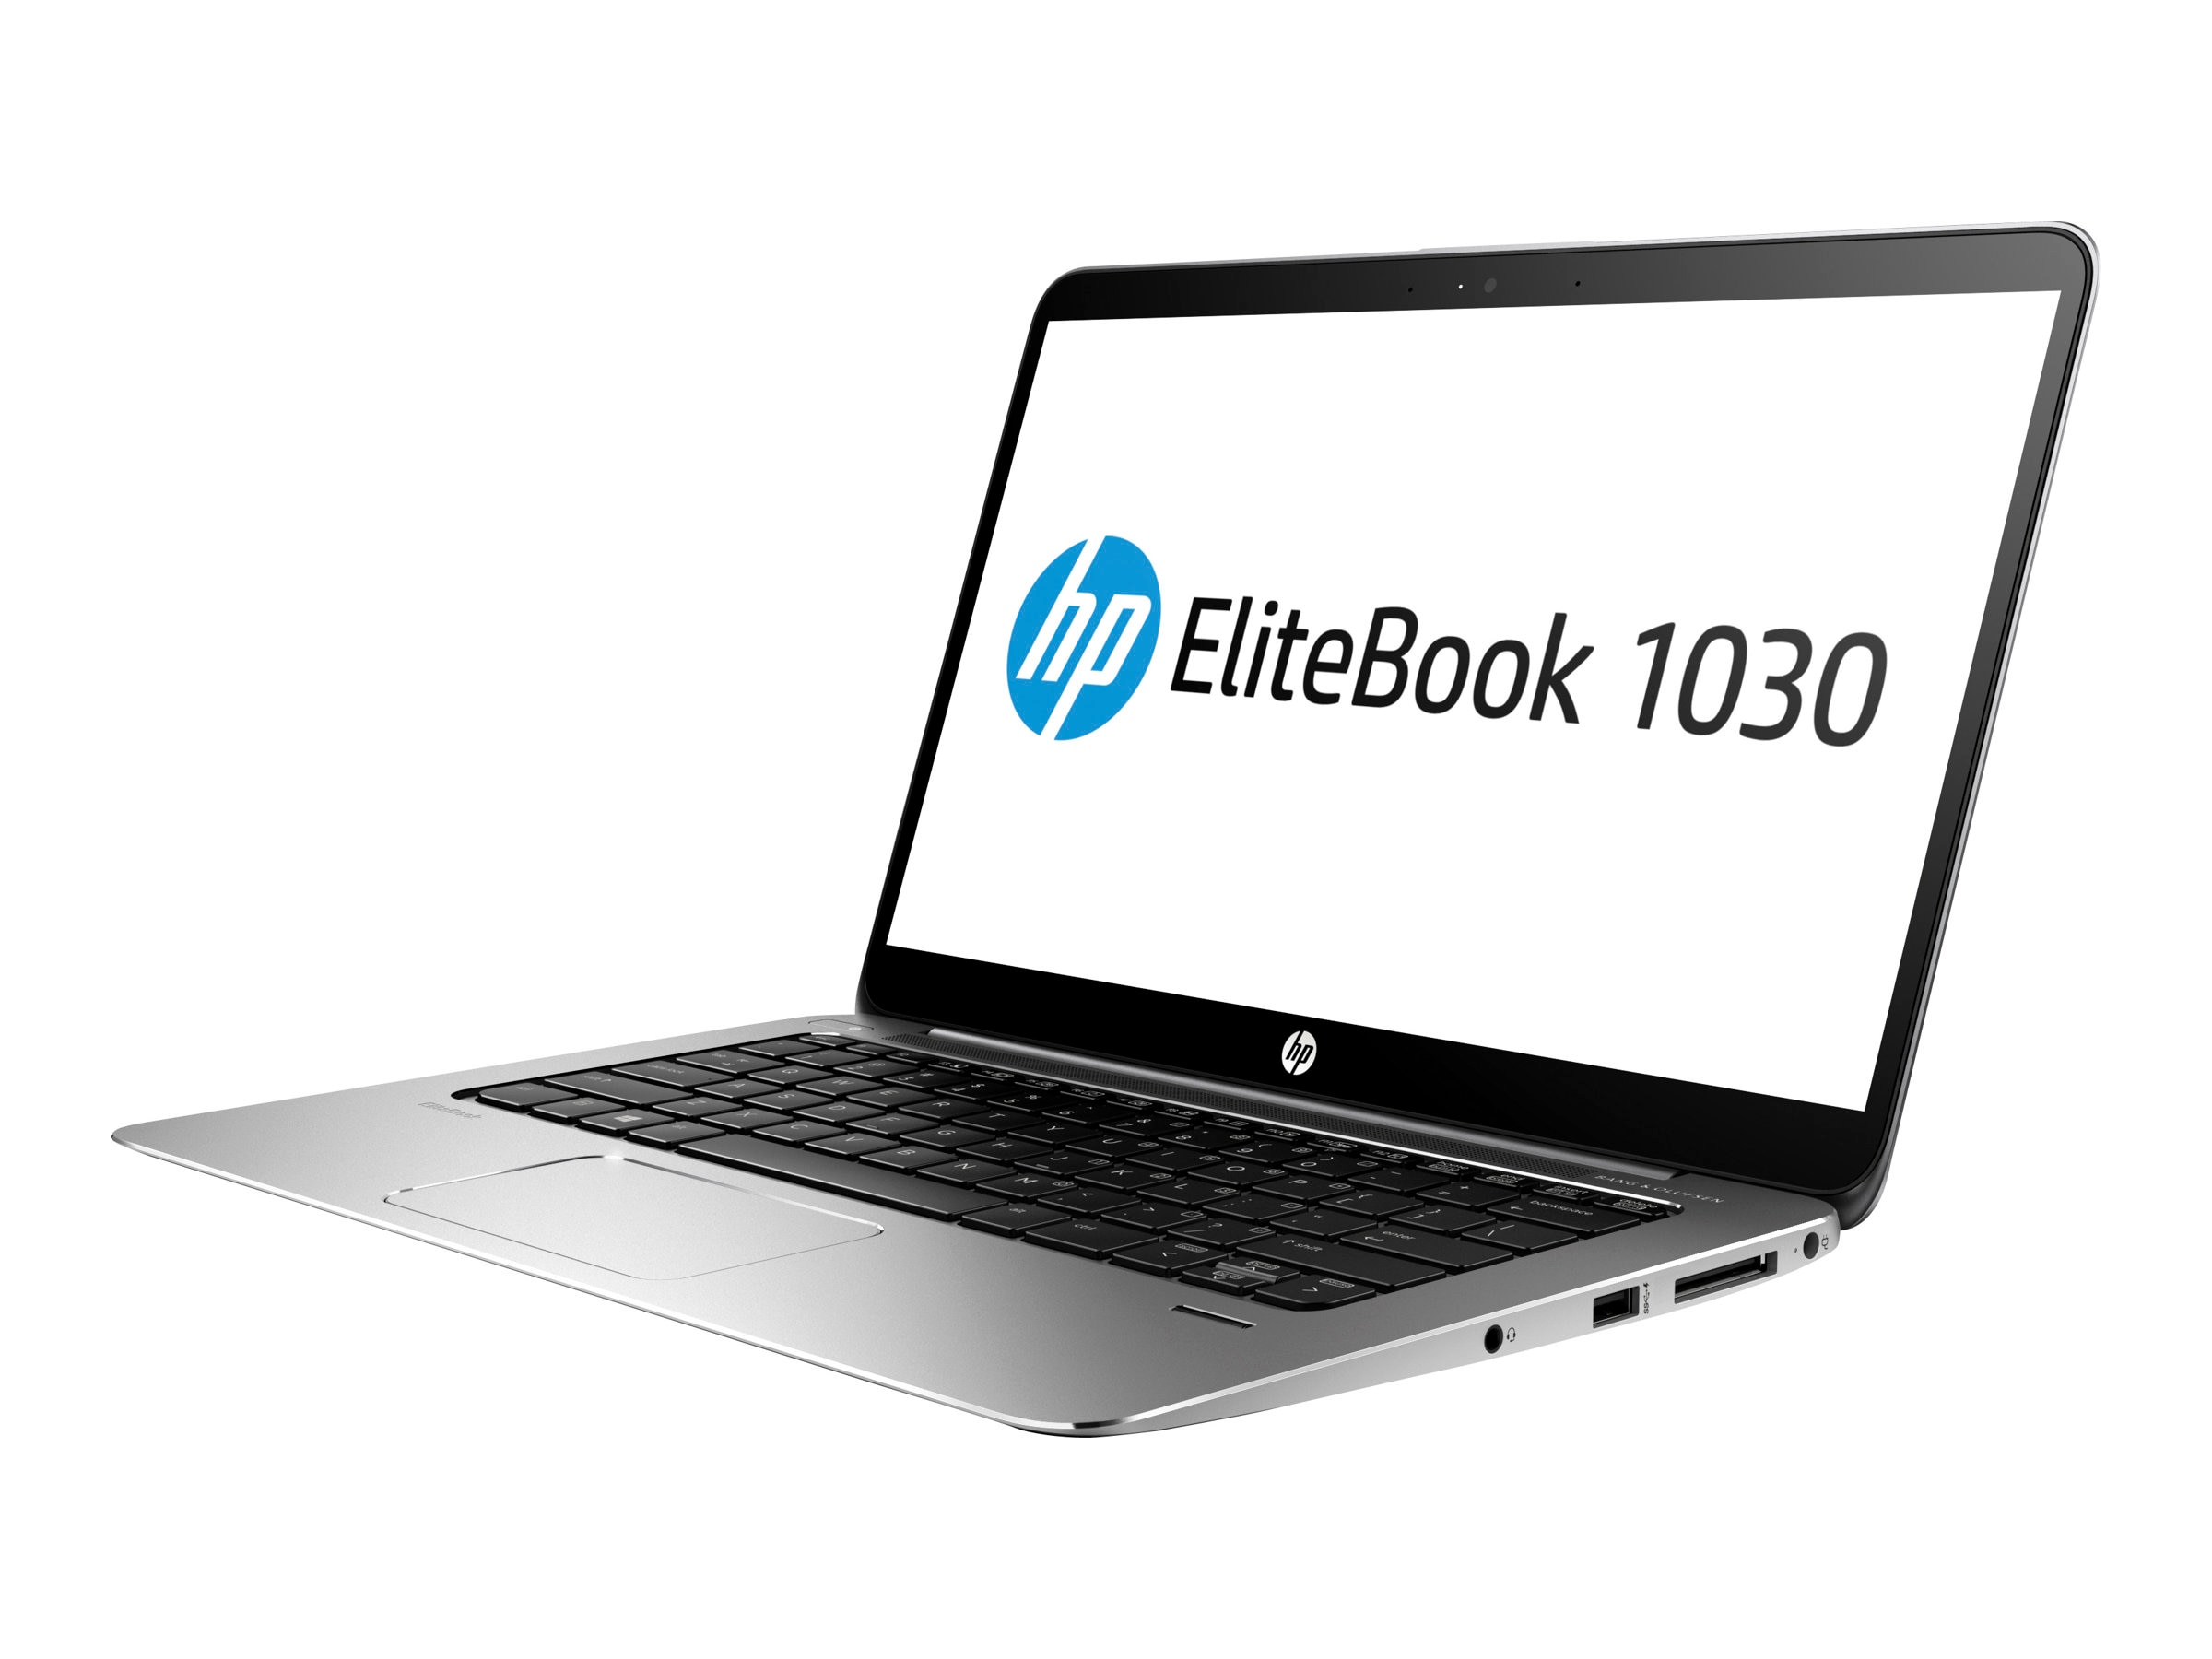 HP EliteBook 1030 G1 1.2GHz Core m7 13.3in display, Z1Z99UT#ABA